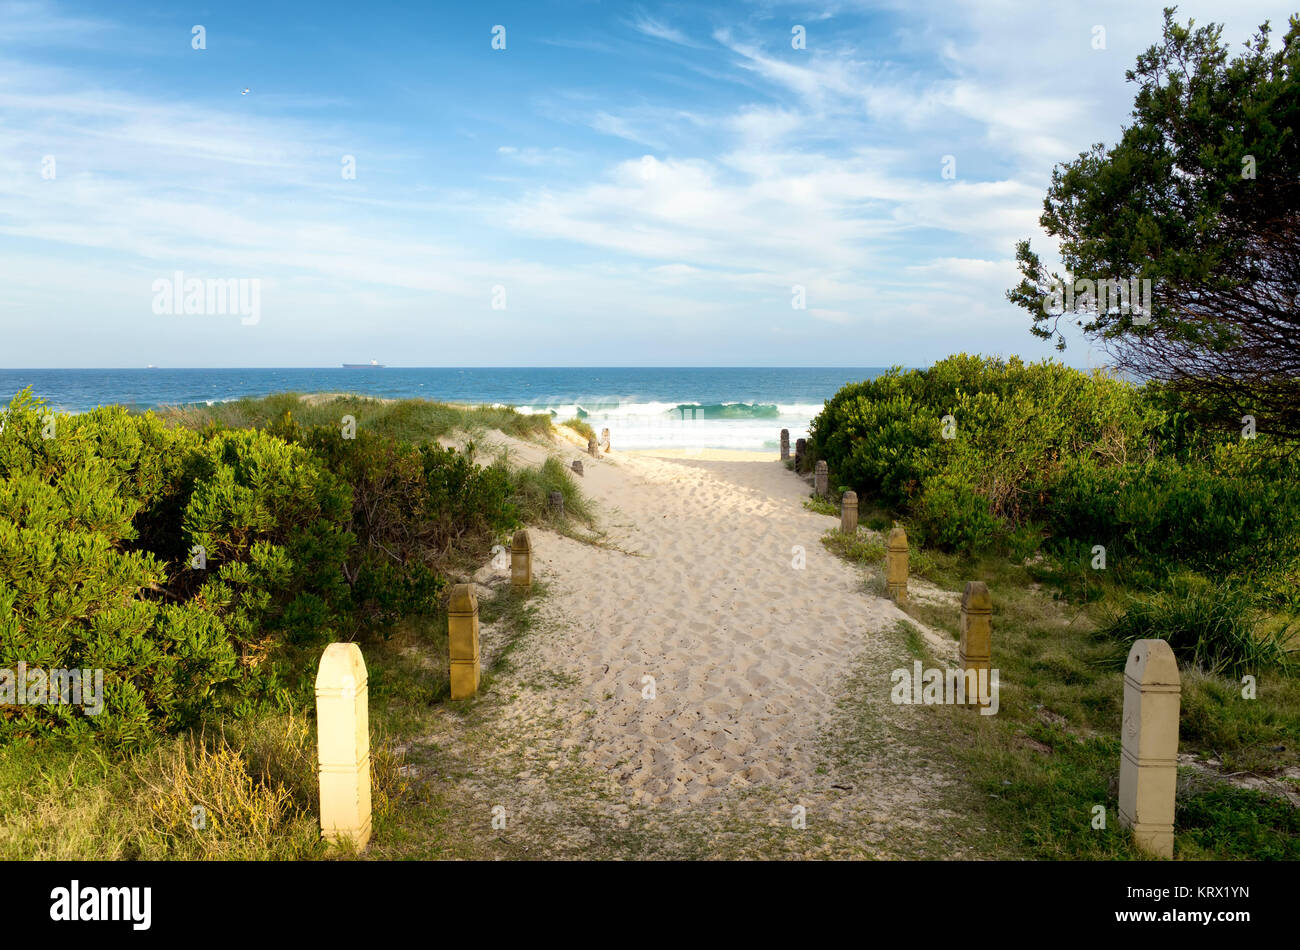 Pathway Over Sand Dunes to the Beach at Wollongon Australia Stock Photo